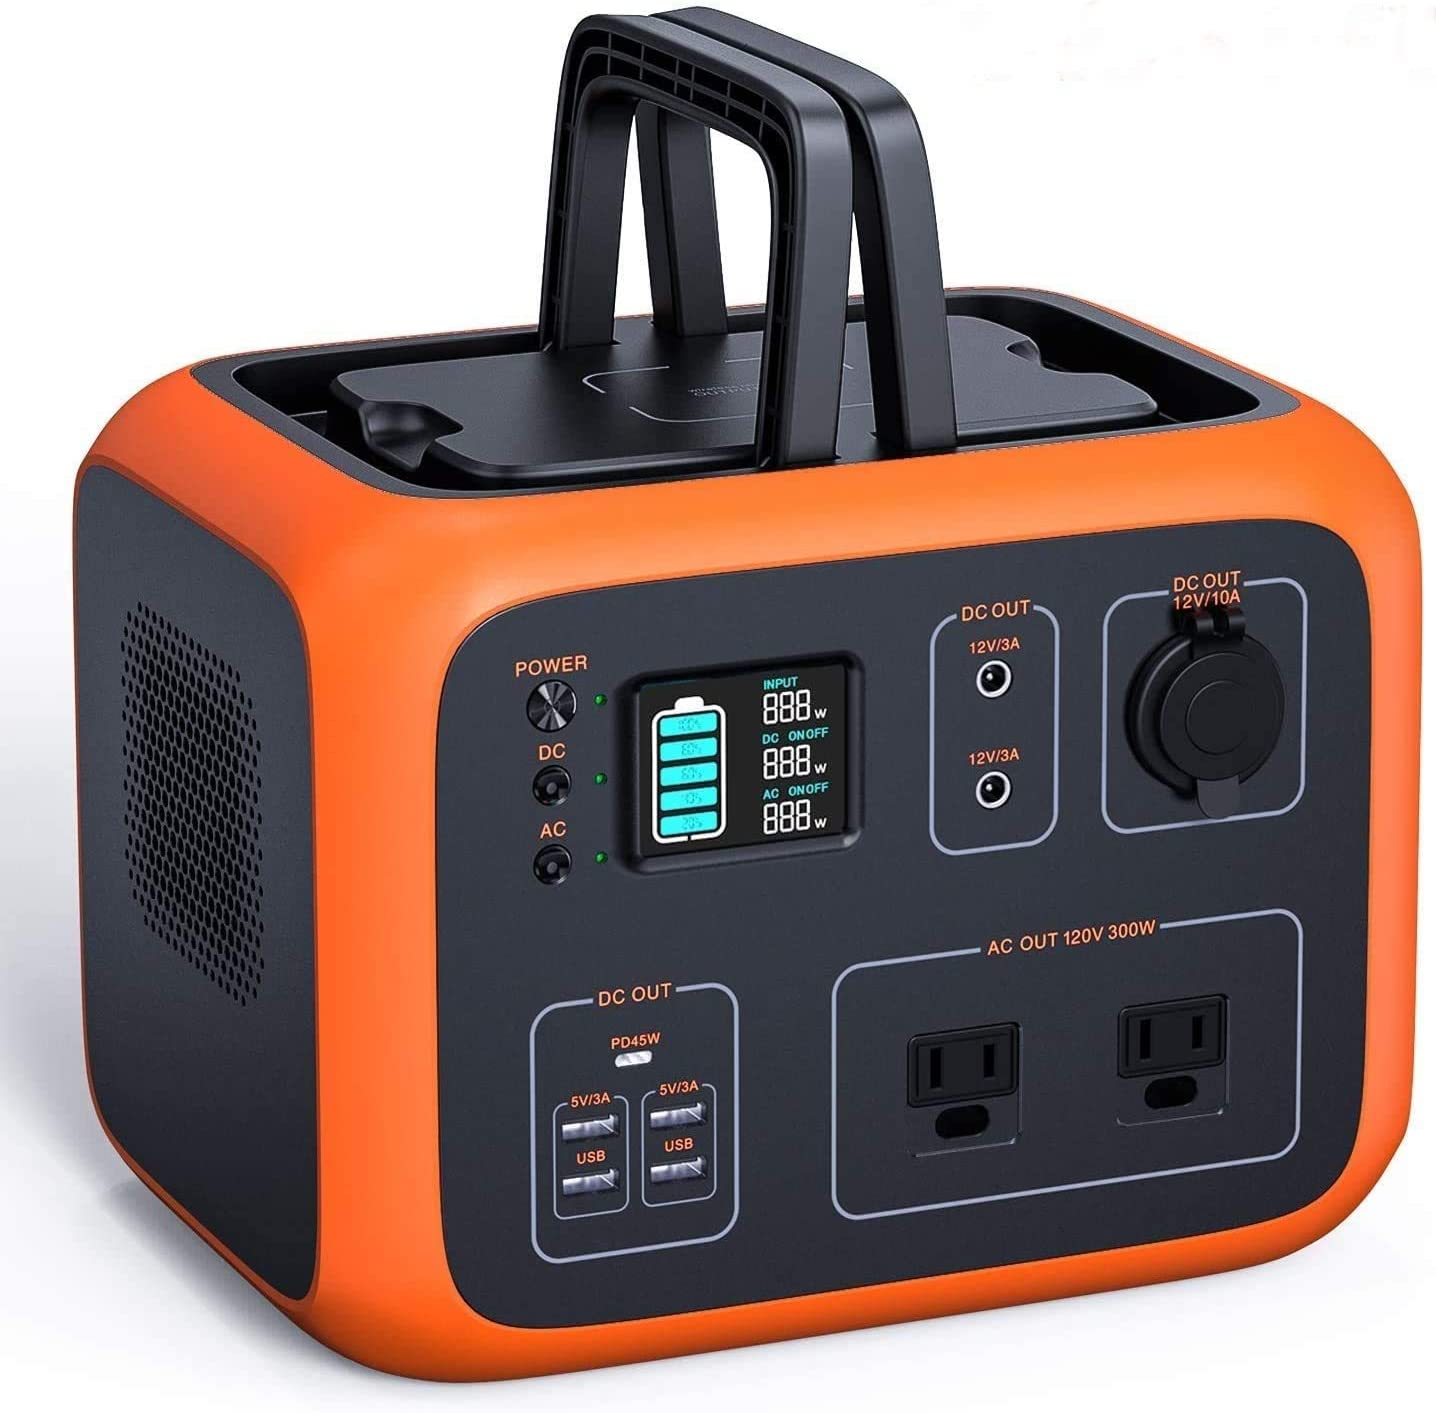 TACKLIFE Portable Power Station, 500Wh Outdoor Solar Generator with Pure Sine Wave 110V AC Outlets QI-Certified Wireless Charging USB-C PD 45W,recharged by Solar Panel Wall Outlet Car